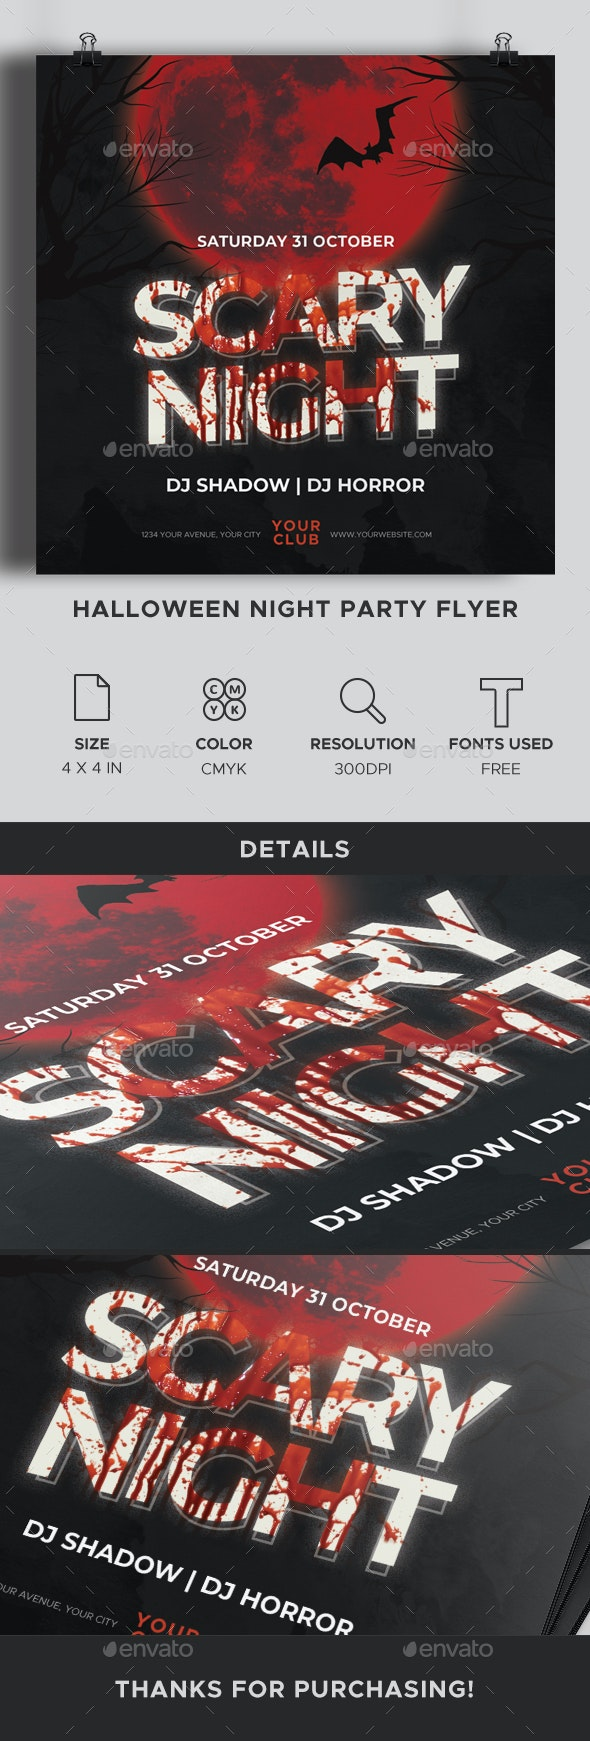 Halloween Night Party Flyer - Clubs & Parties Events